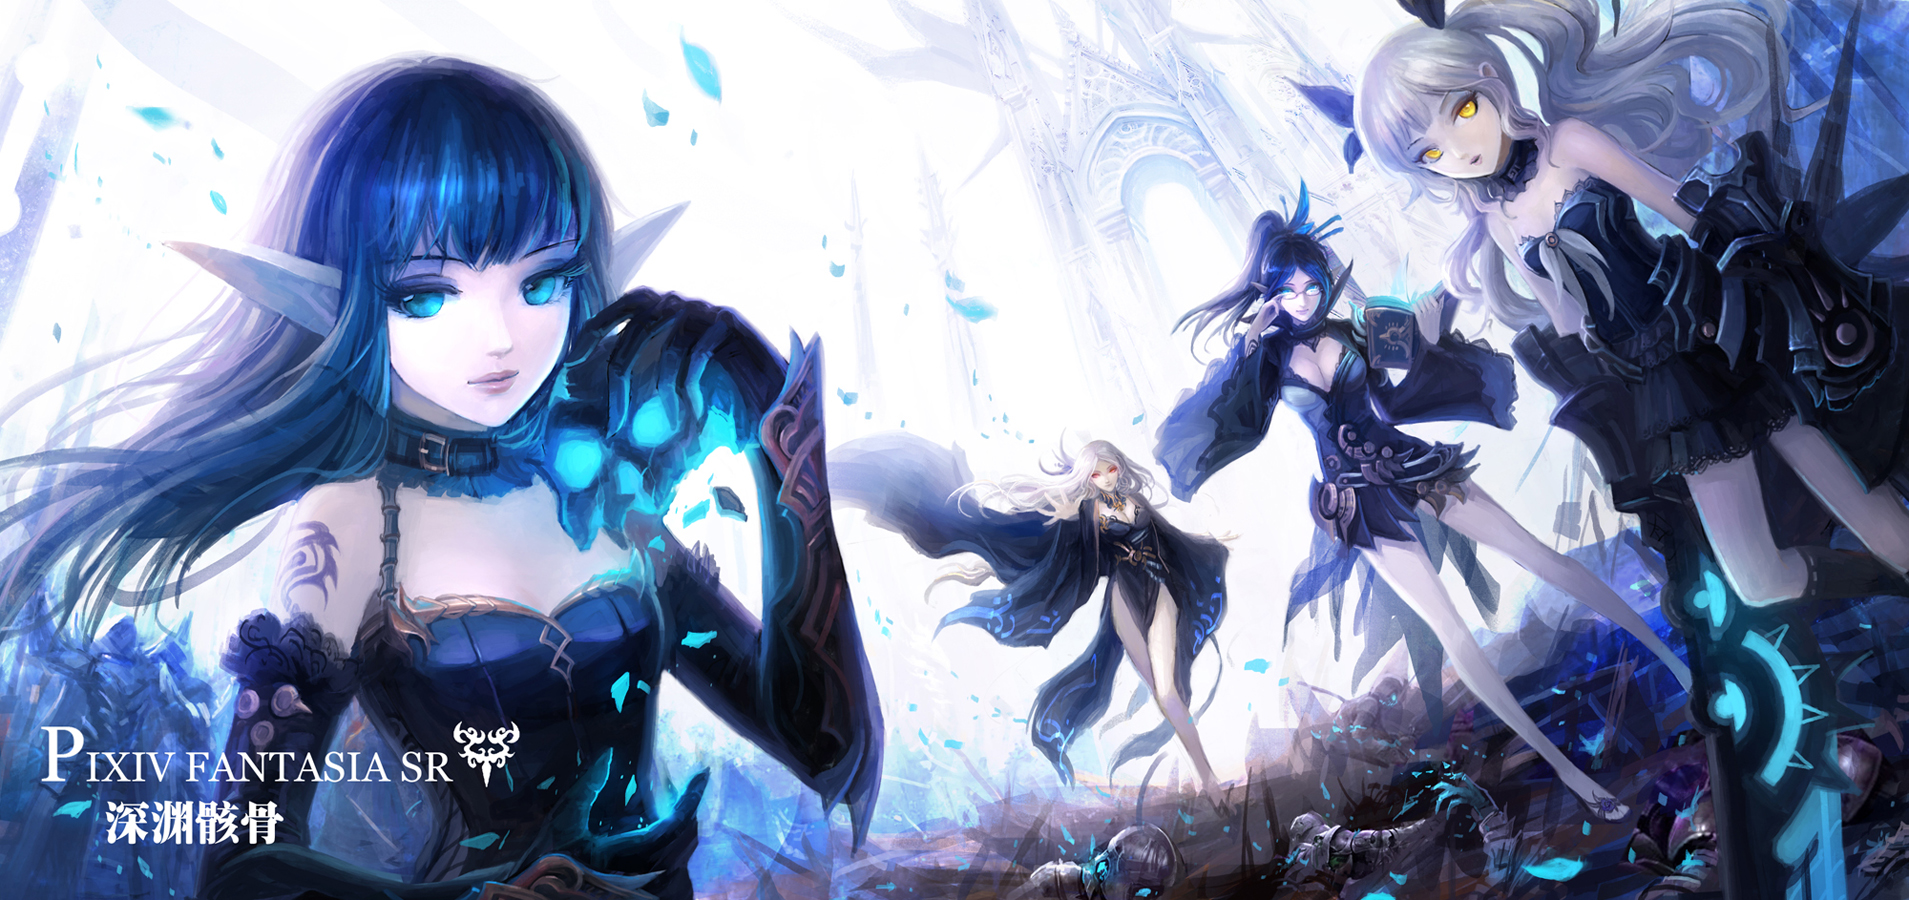 Goth Girl Wallpaper 1440x2960 Pixiv Fantasia Wallpaper And Background Image 1909x900